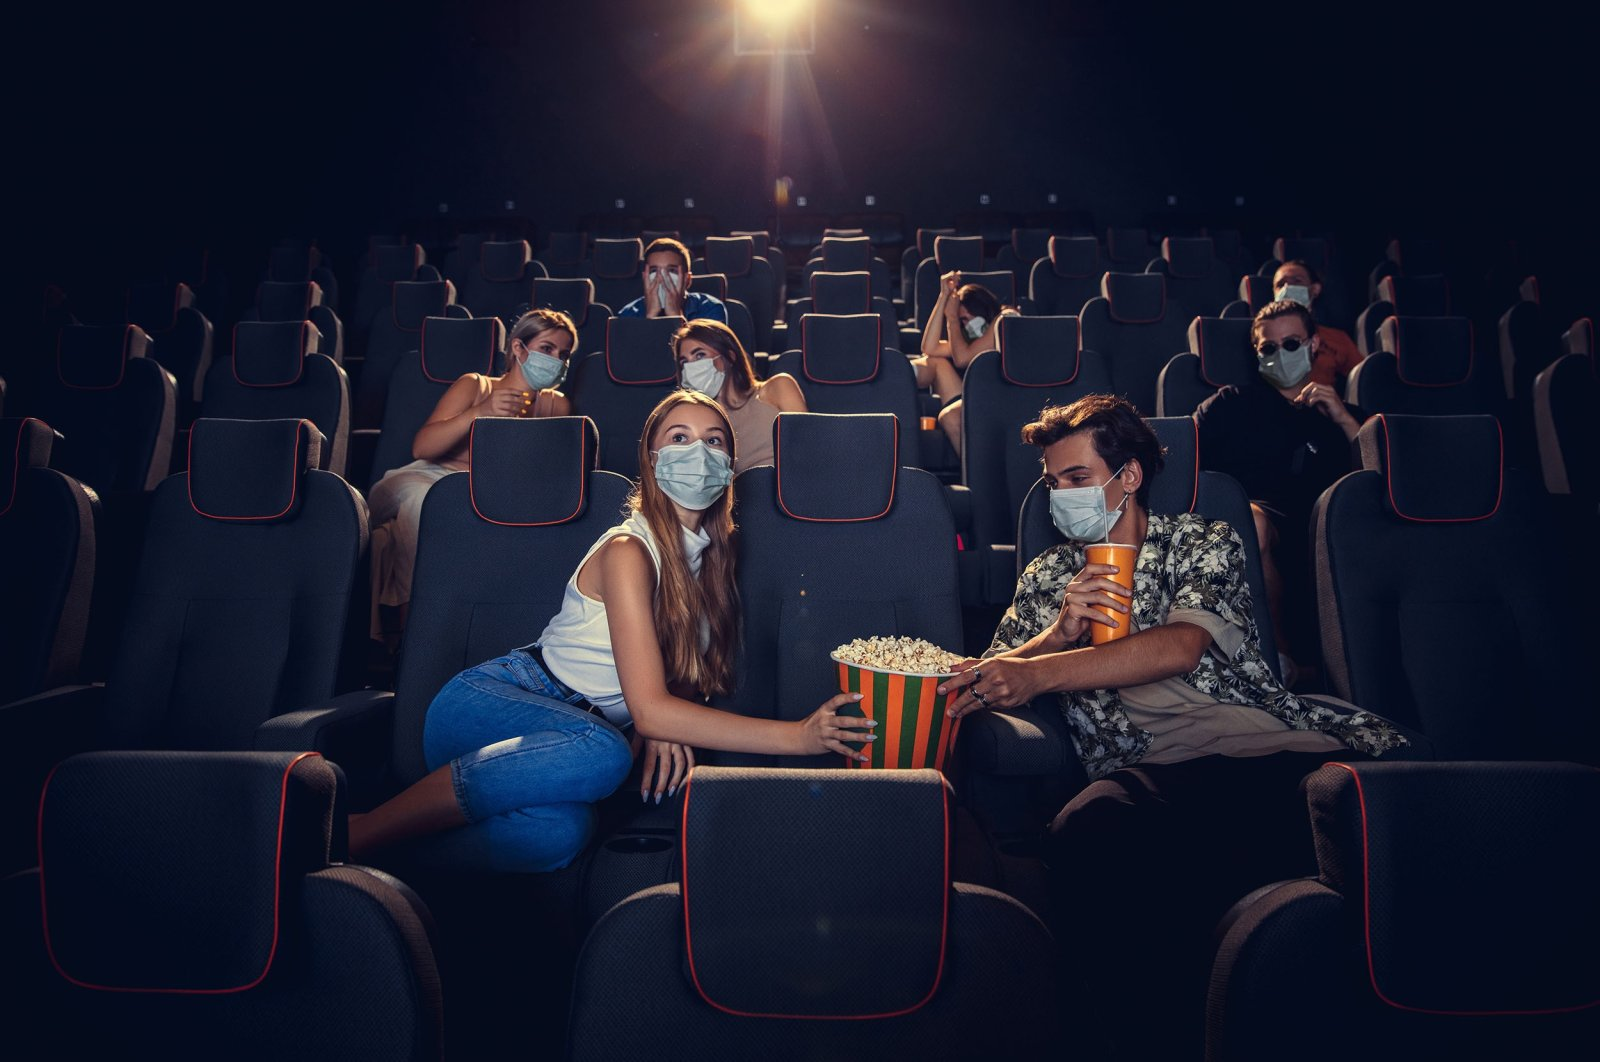 Movie theaters with 50 seats will now be able to receive government support. (Shutterstock Photo)